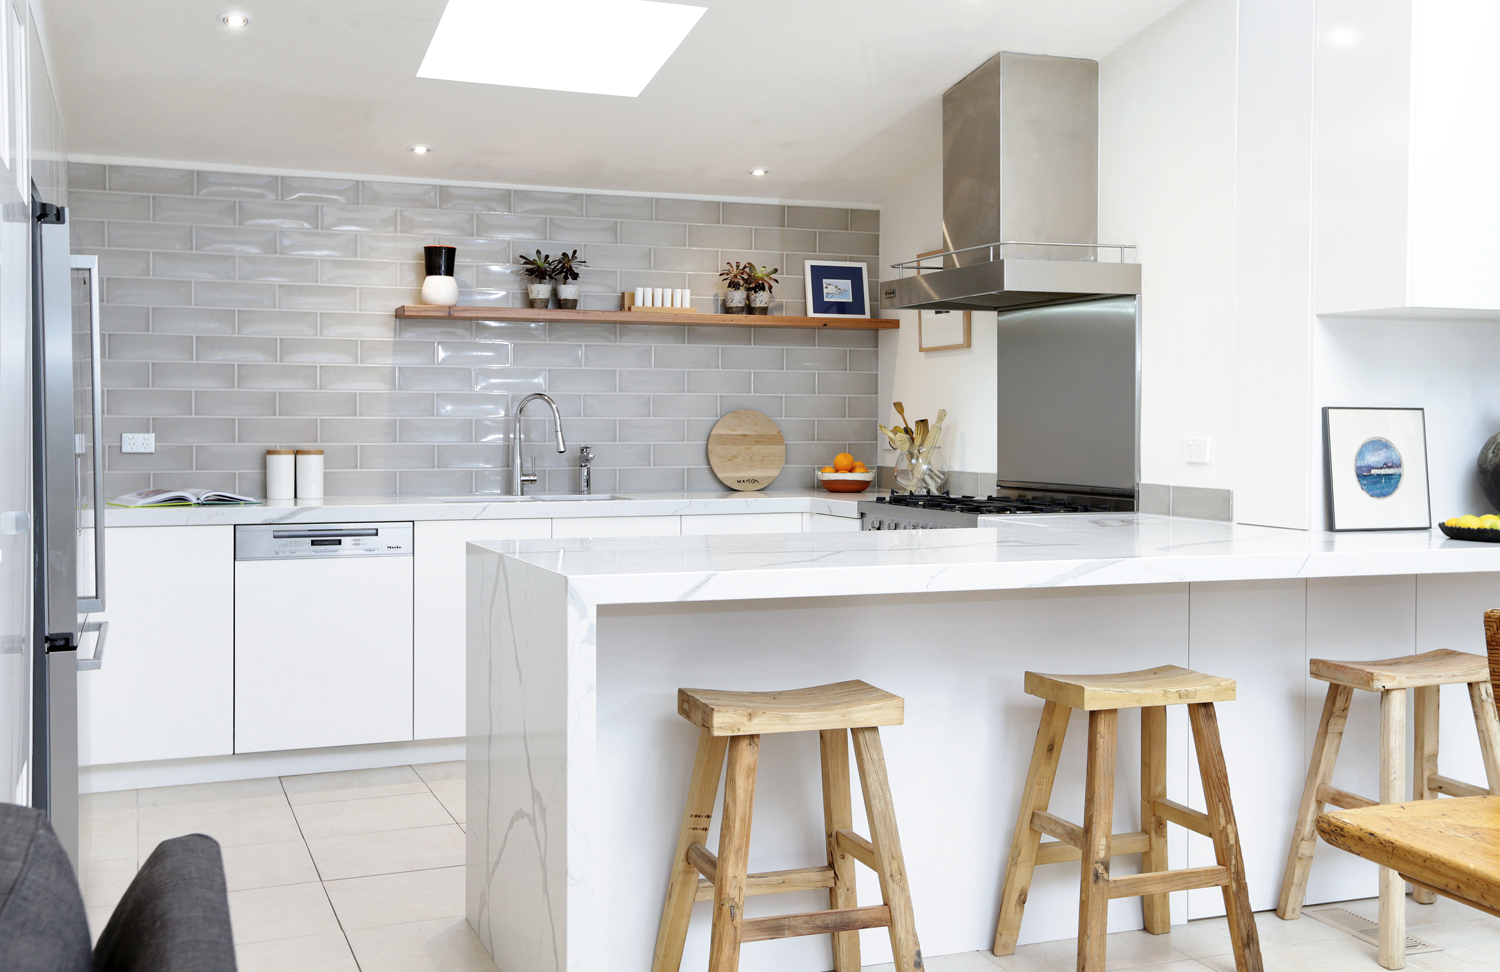 Crisp and clean: kitchen design - Completehome